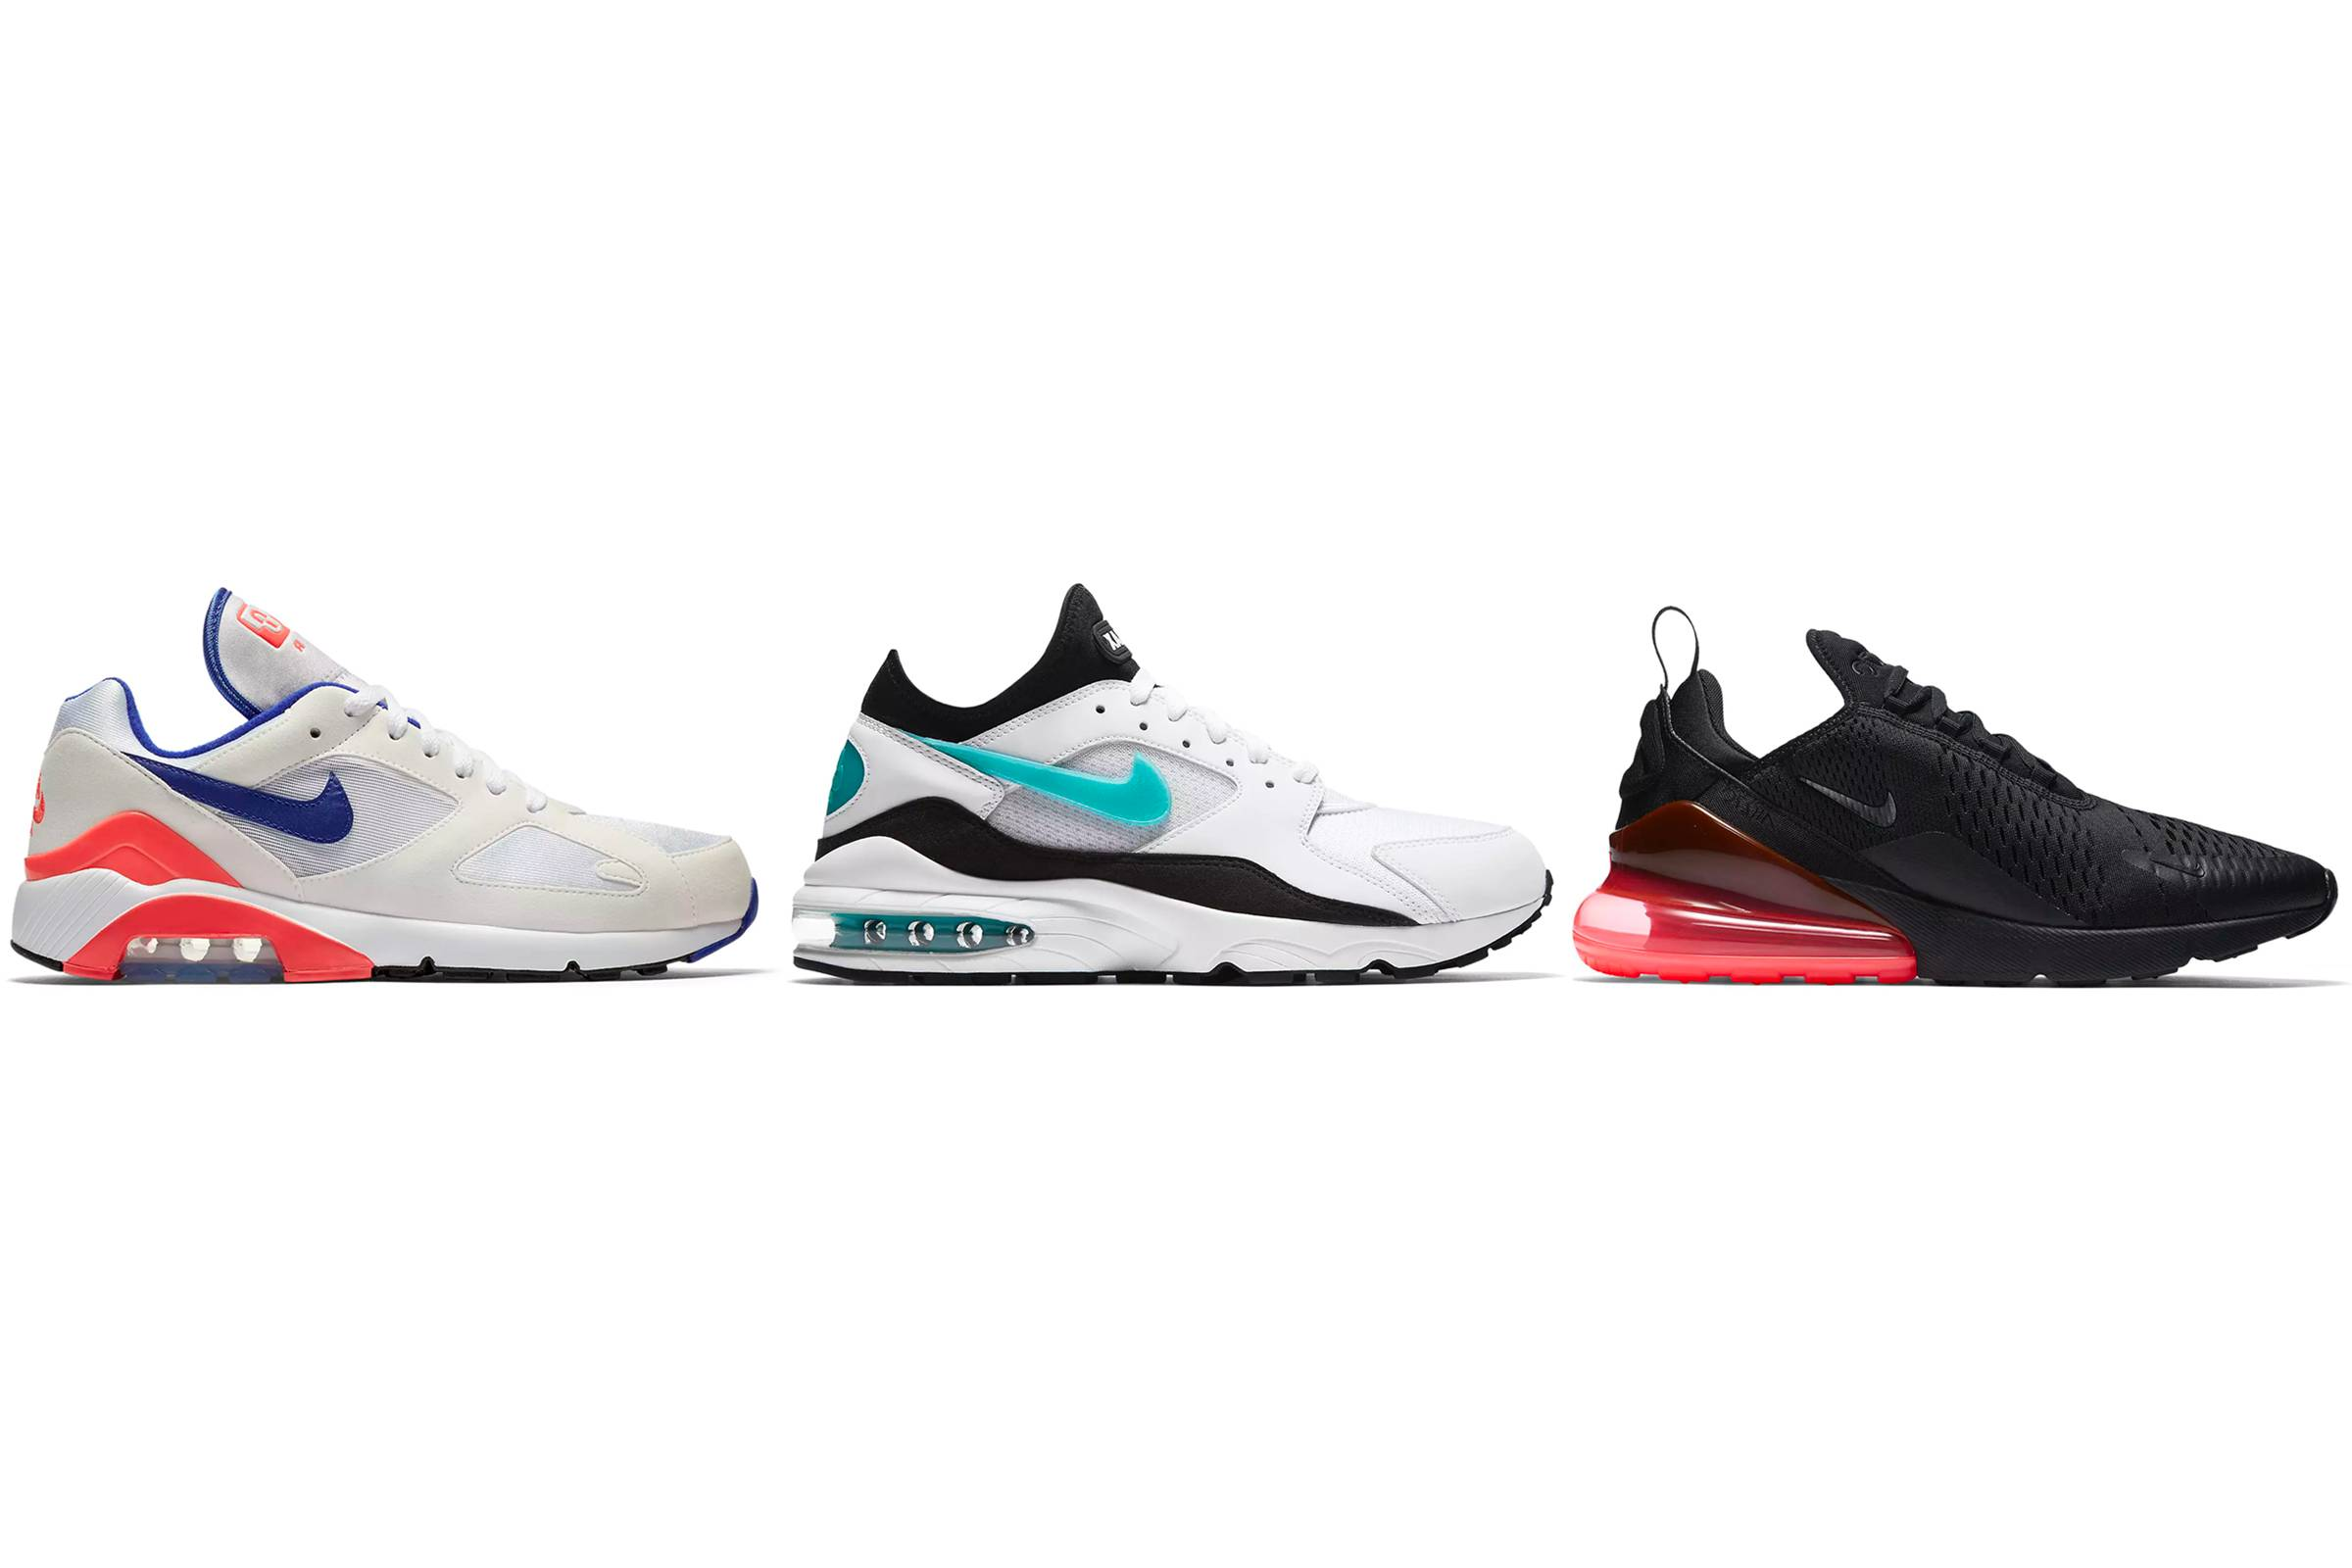 71539ca998 Degrees of Air: The Evolution of the Air Max Heel Unit - Air Max 180 ...